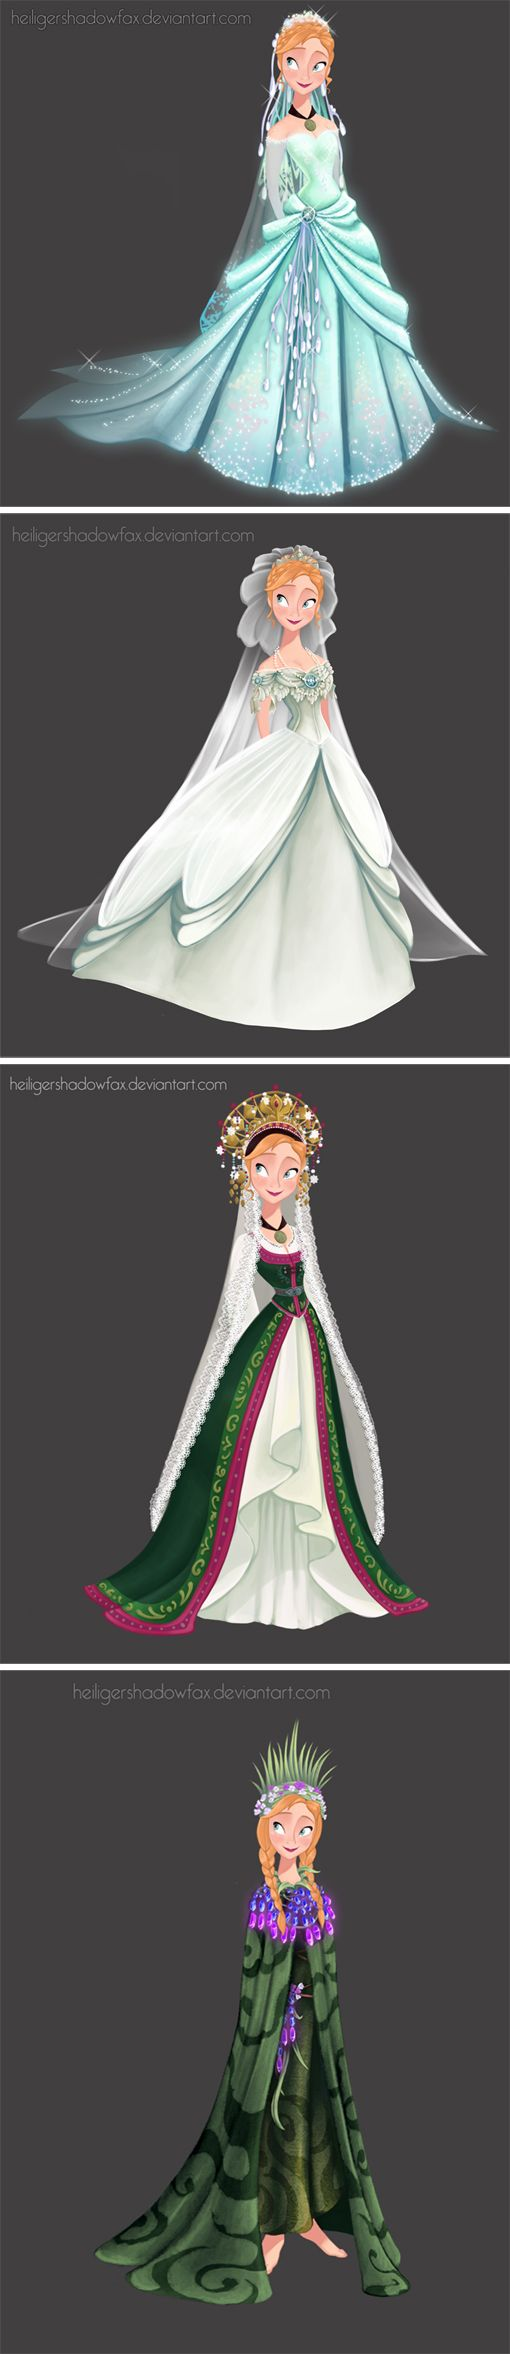 "wedding dress for Anna by *HeiligerShadowfax* ▲1-""Sky Awake"". I imagine this dress was made by Elsa with her magic for the sister's wedding… 2-""imperial"" 3-""folk"" norwegian bride's dress 4-Troll Wedding:"